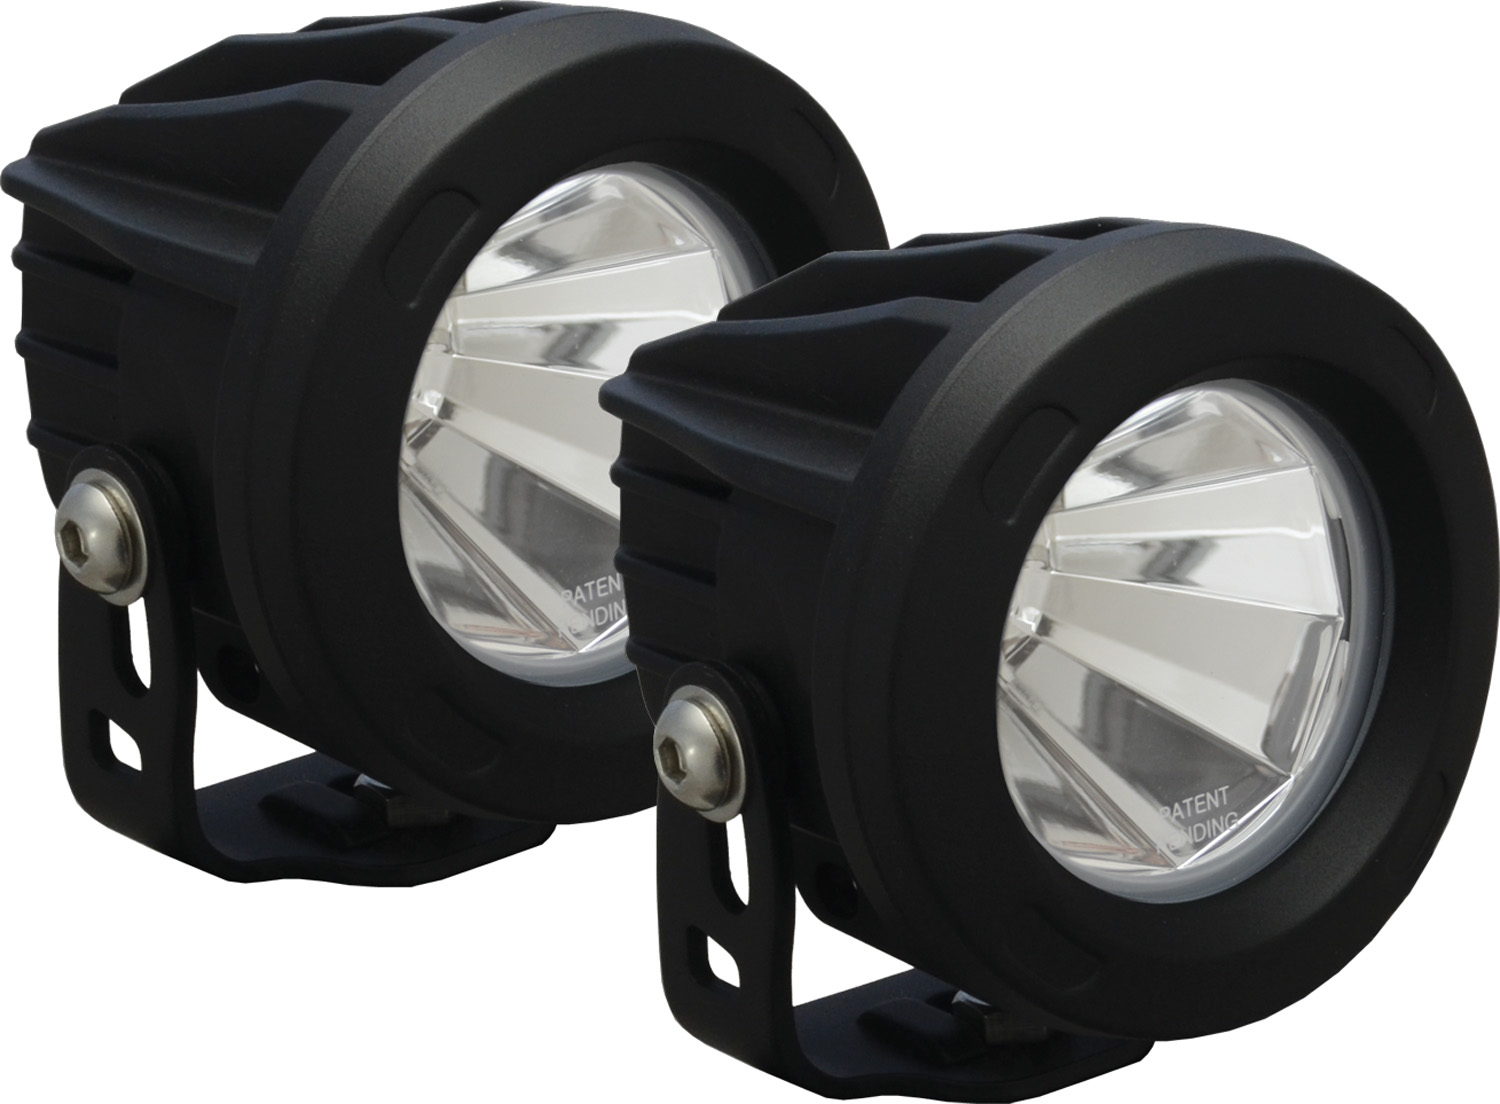 OPTIMUS ROUND BLACK 1 10W LED 60? FLOOD KIT OF 2 LIGHTS